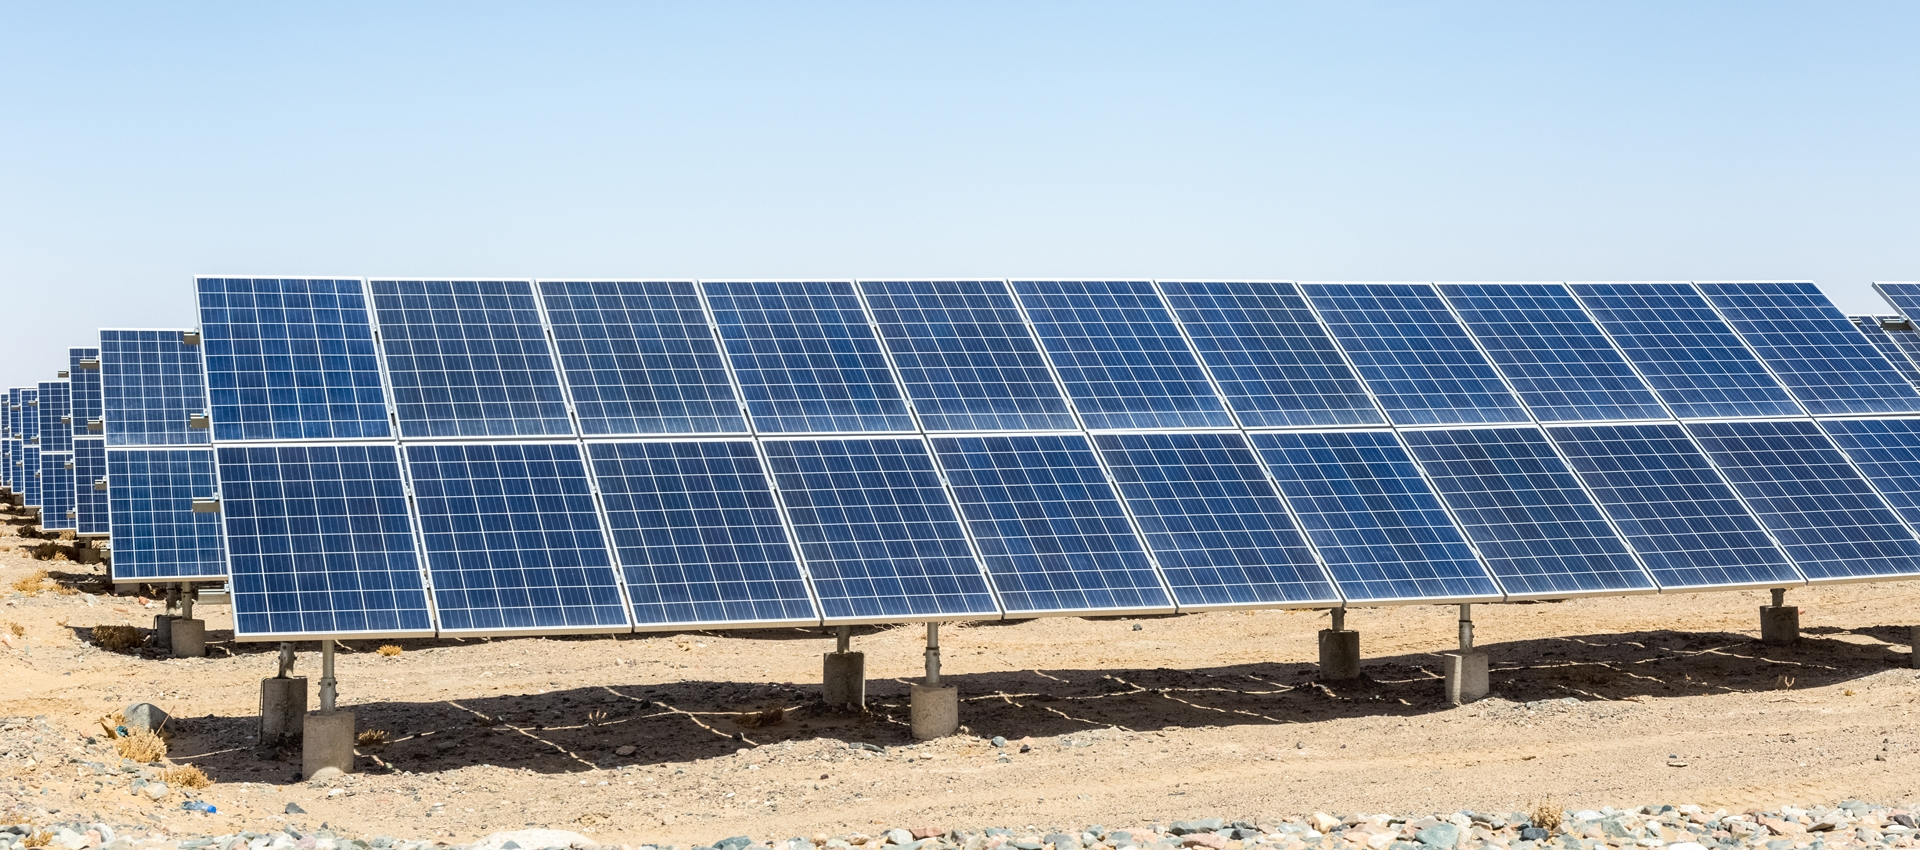 10 Largest Solar Farms in the United States